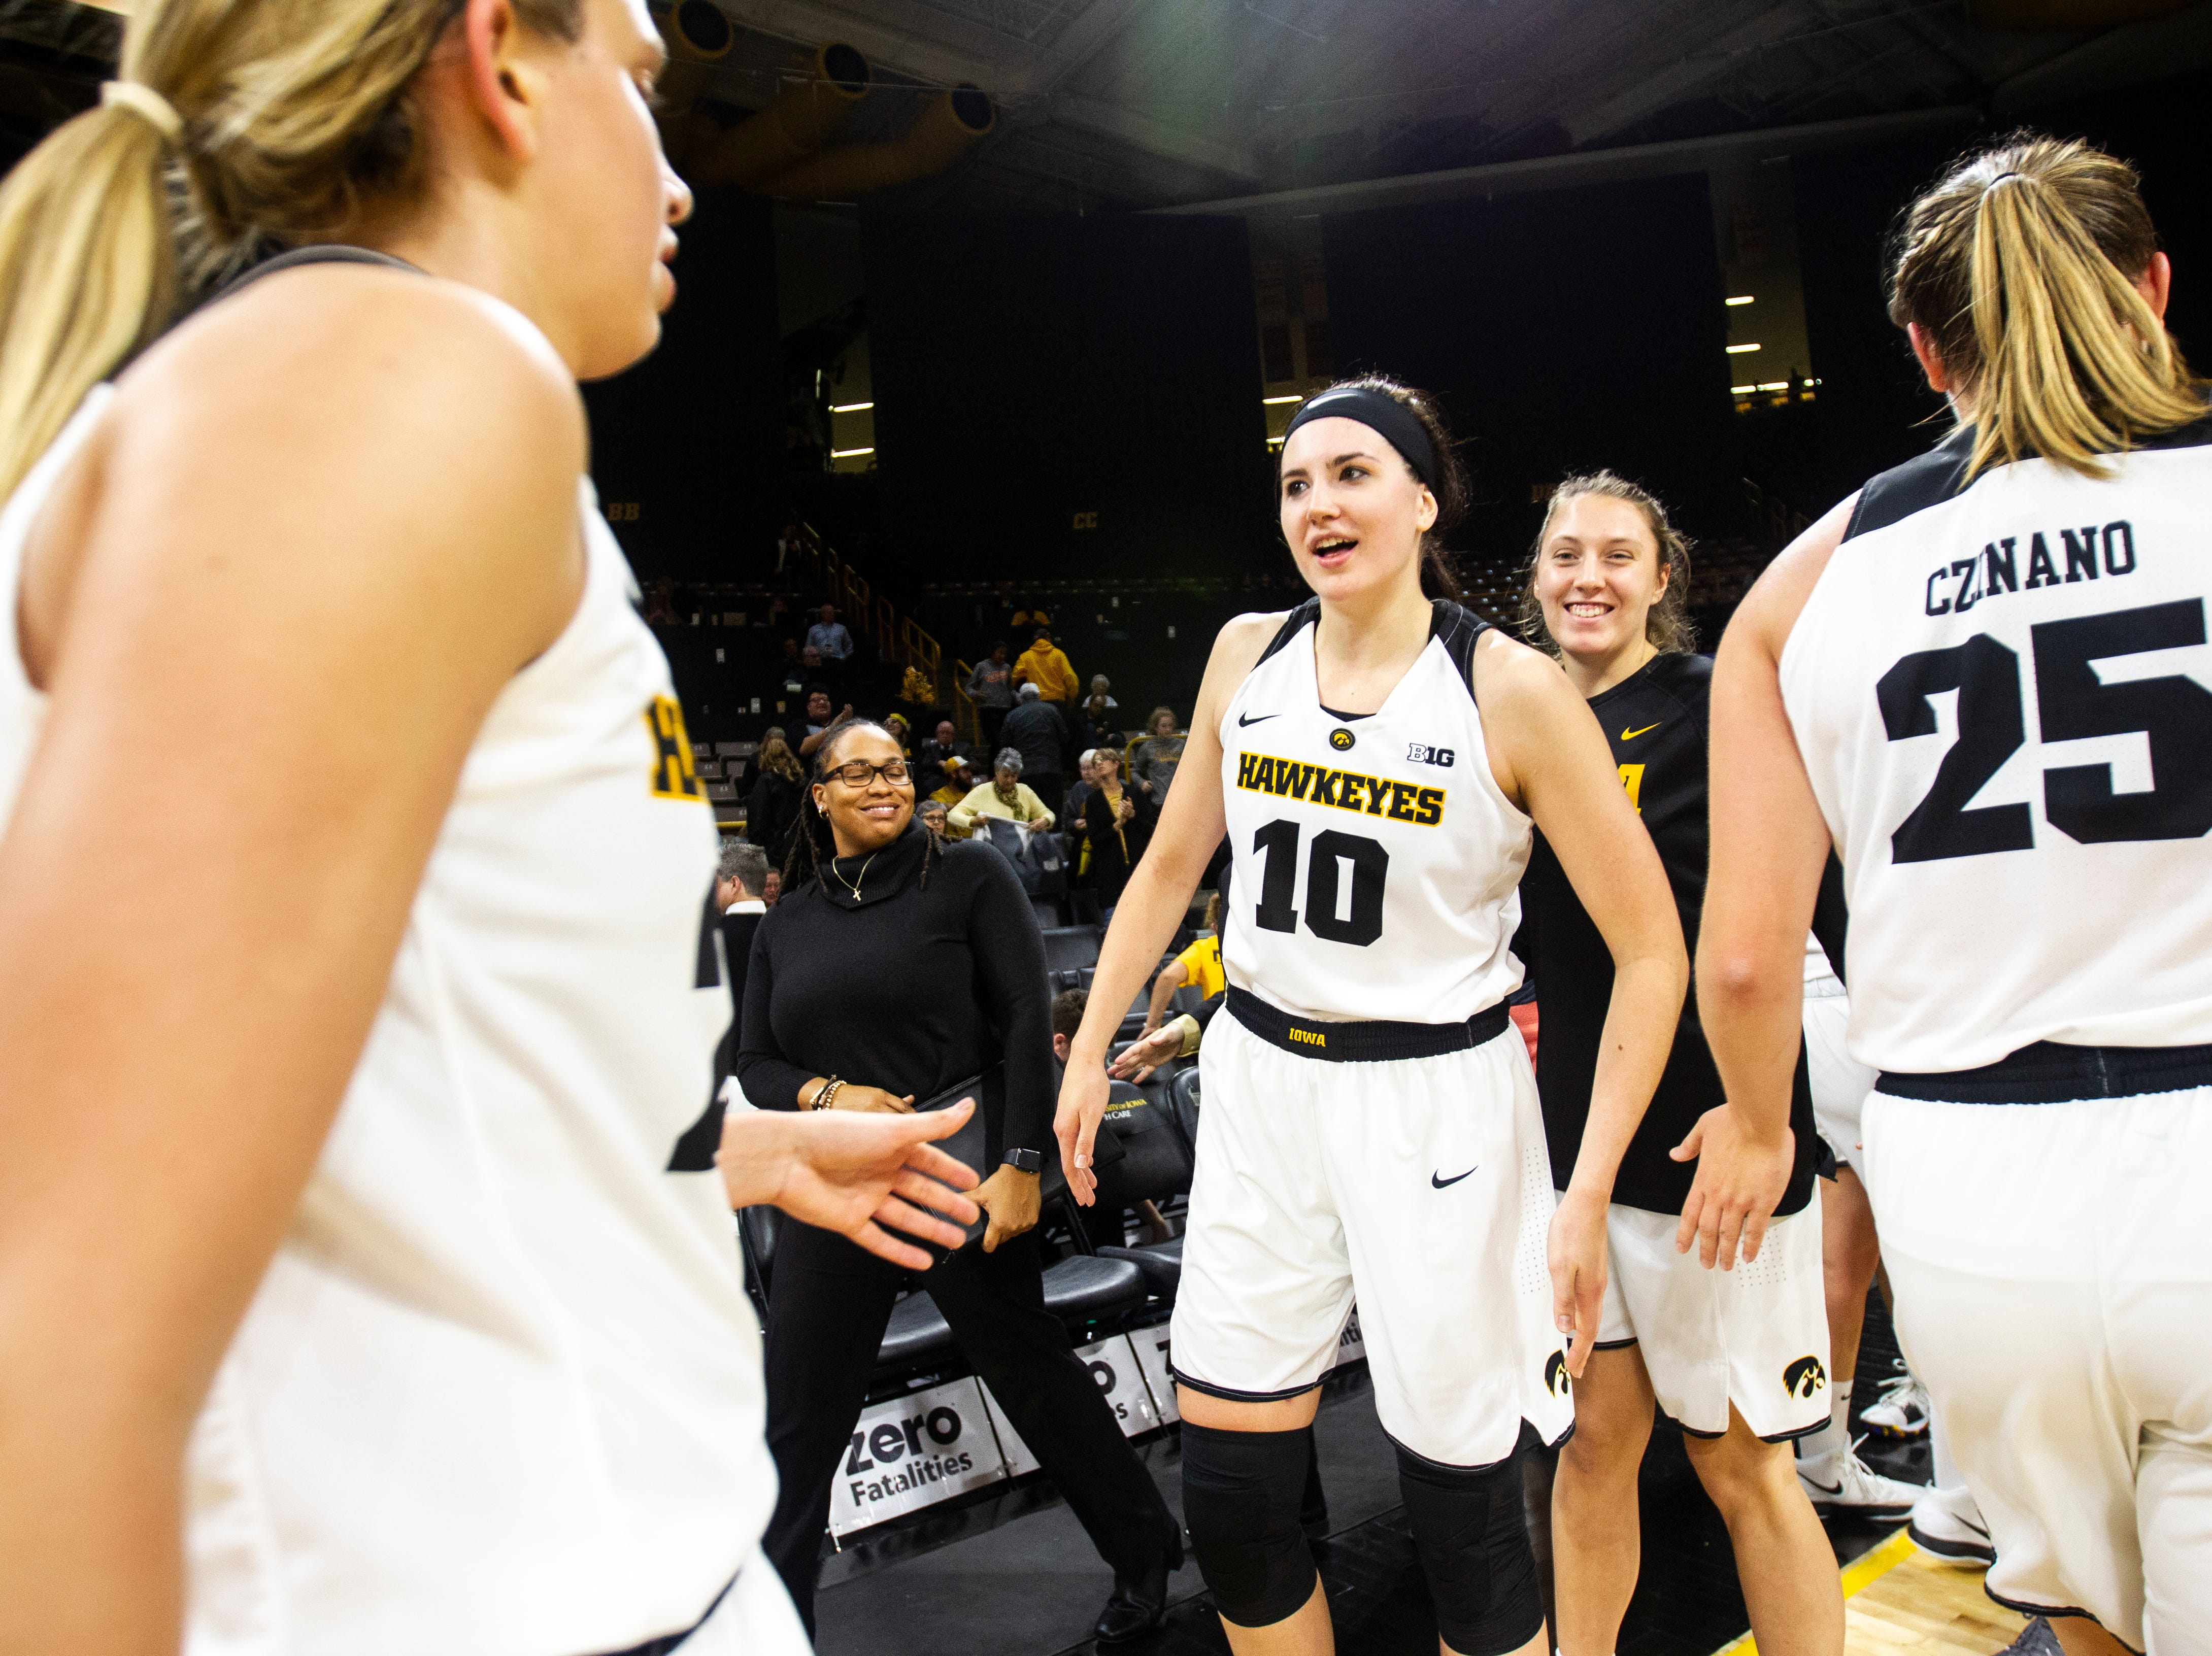 Iowa forward Megan Gustafson (10) celebrates with teammates after a women's basketball exhibition basketball game on Tuesday, Nov. 6, 2018, at Carver-Hawkeye Arena in Iowa City.